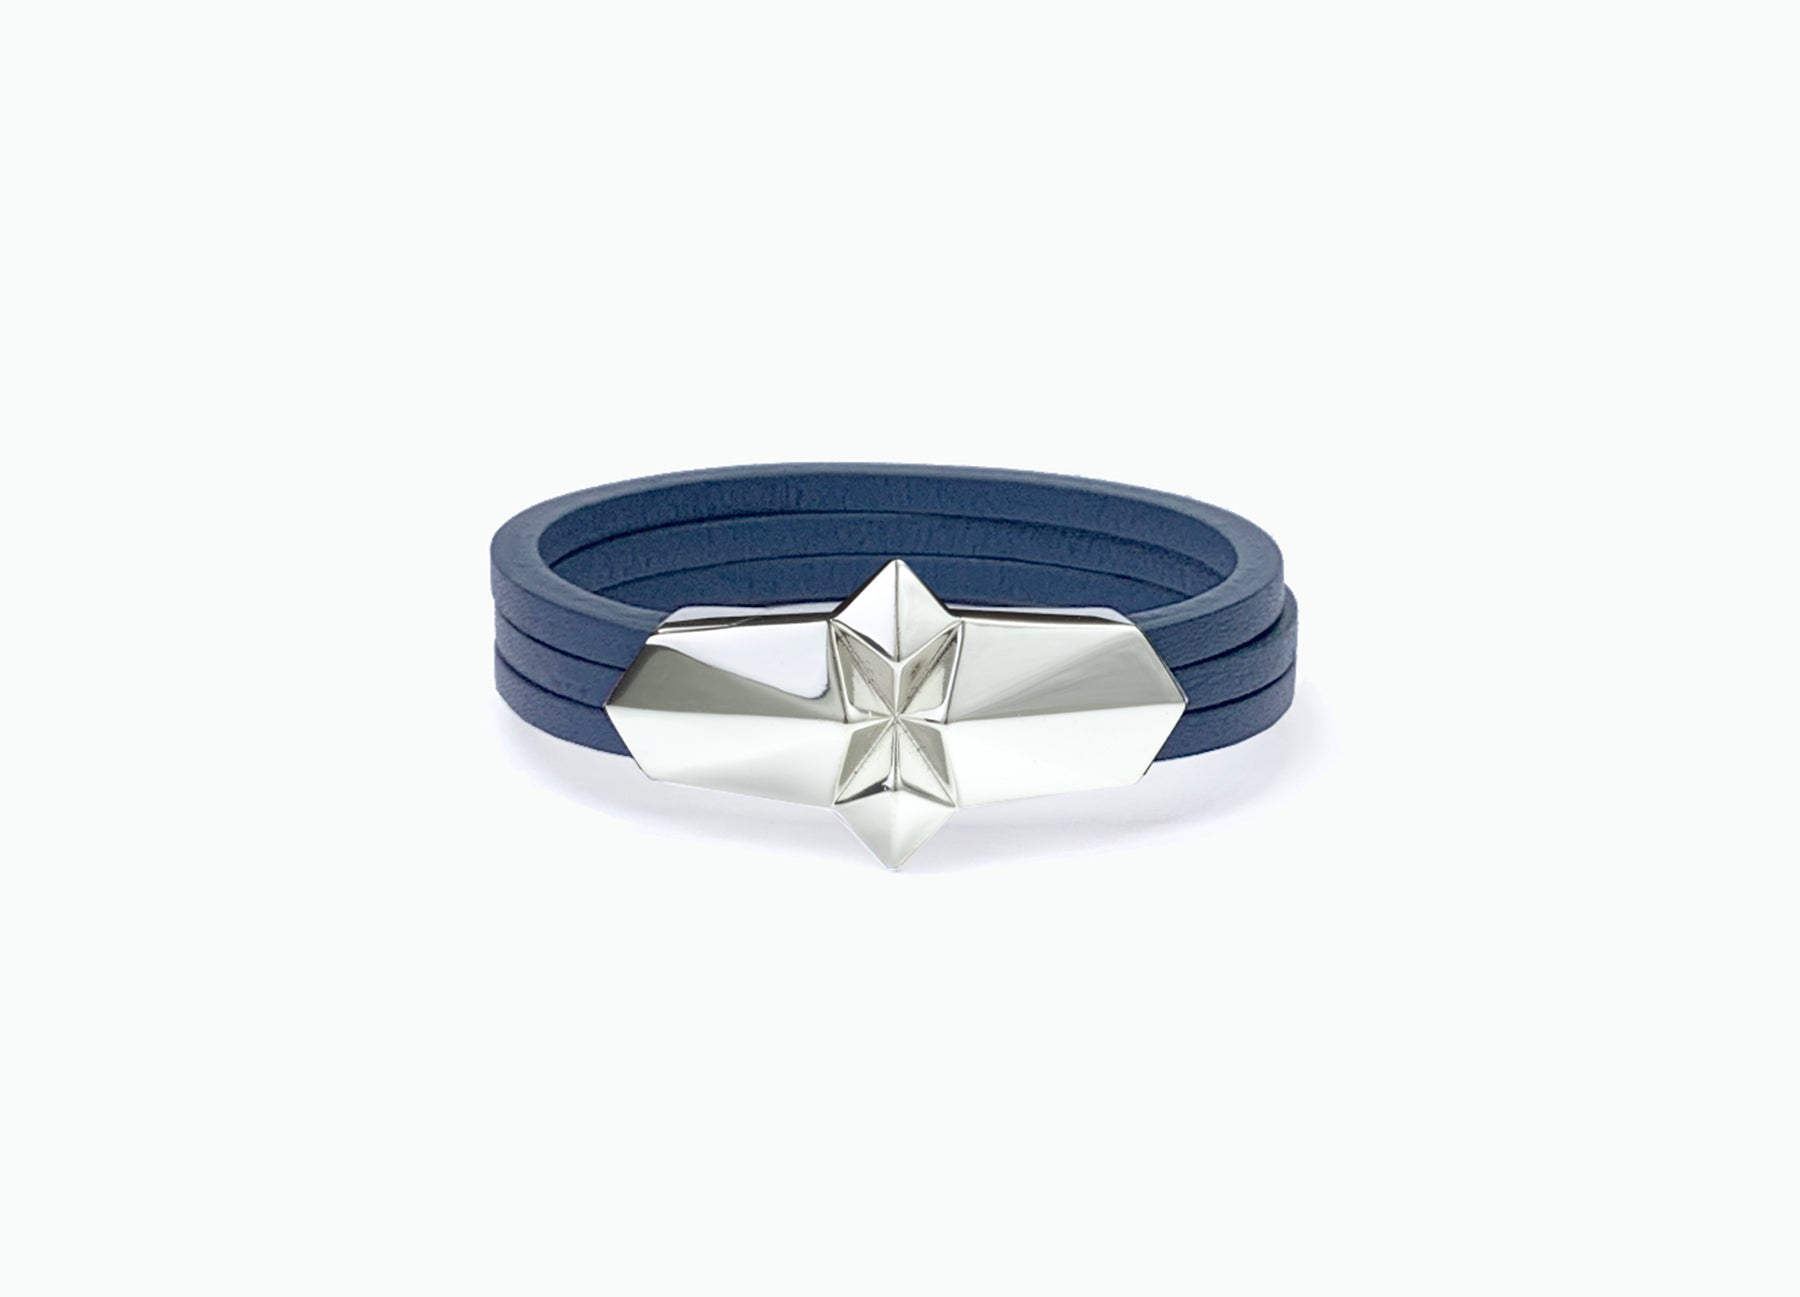 Leather Wrap Shard Bracelet with a white gold silver plated clasp in Royal Blue fine Italian leather by Tomasz Donocik.